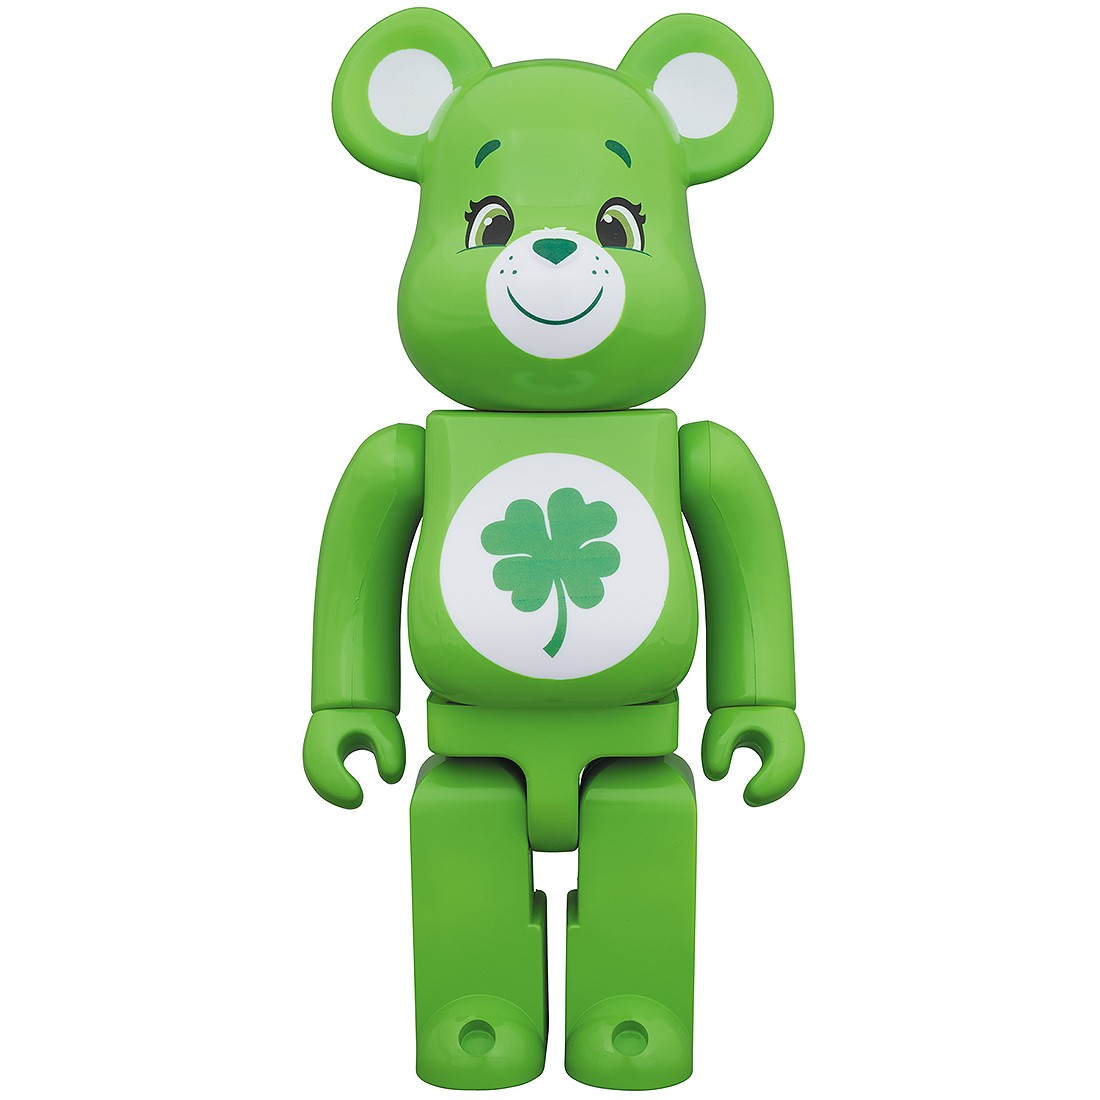 PREORDER - Medicom Care Bears Good Luck Bear 400% Bearbrick Figure (green)